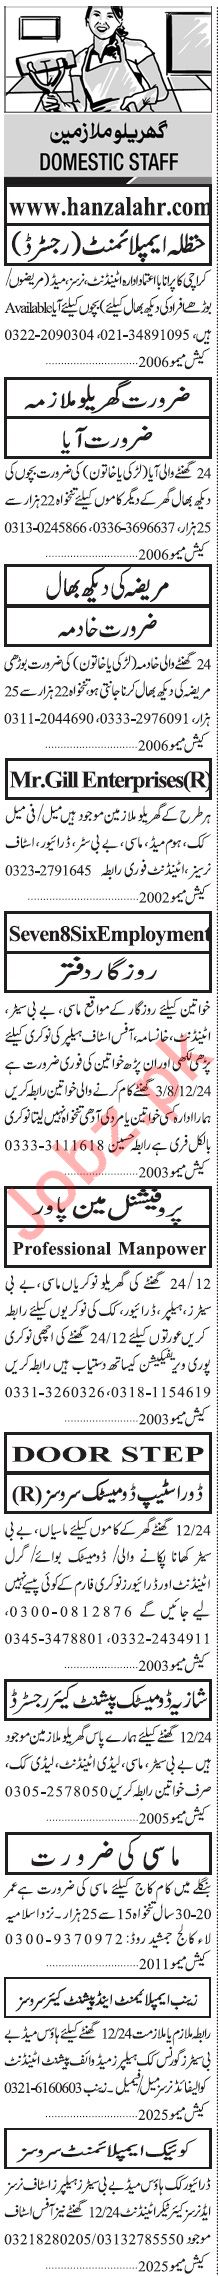 Jang Sunday Classified Ads 19 Jan 2020 for House Staff